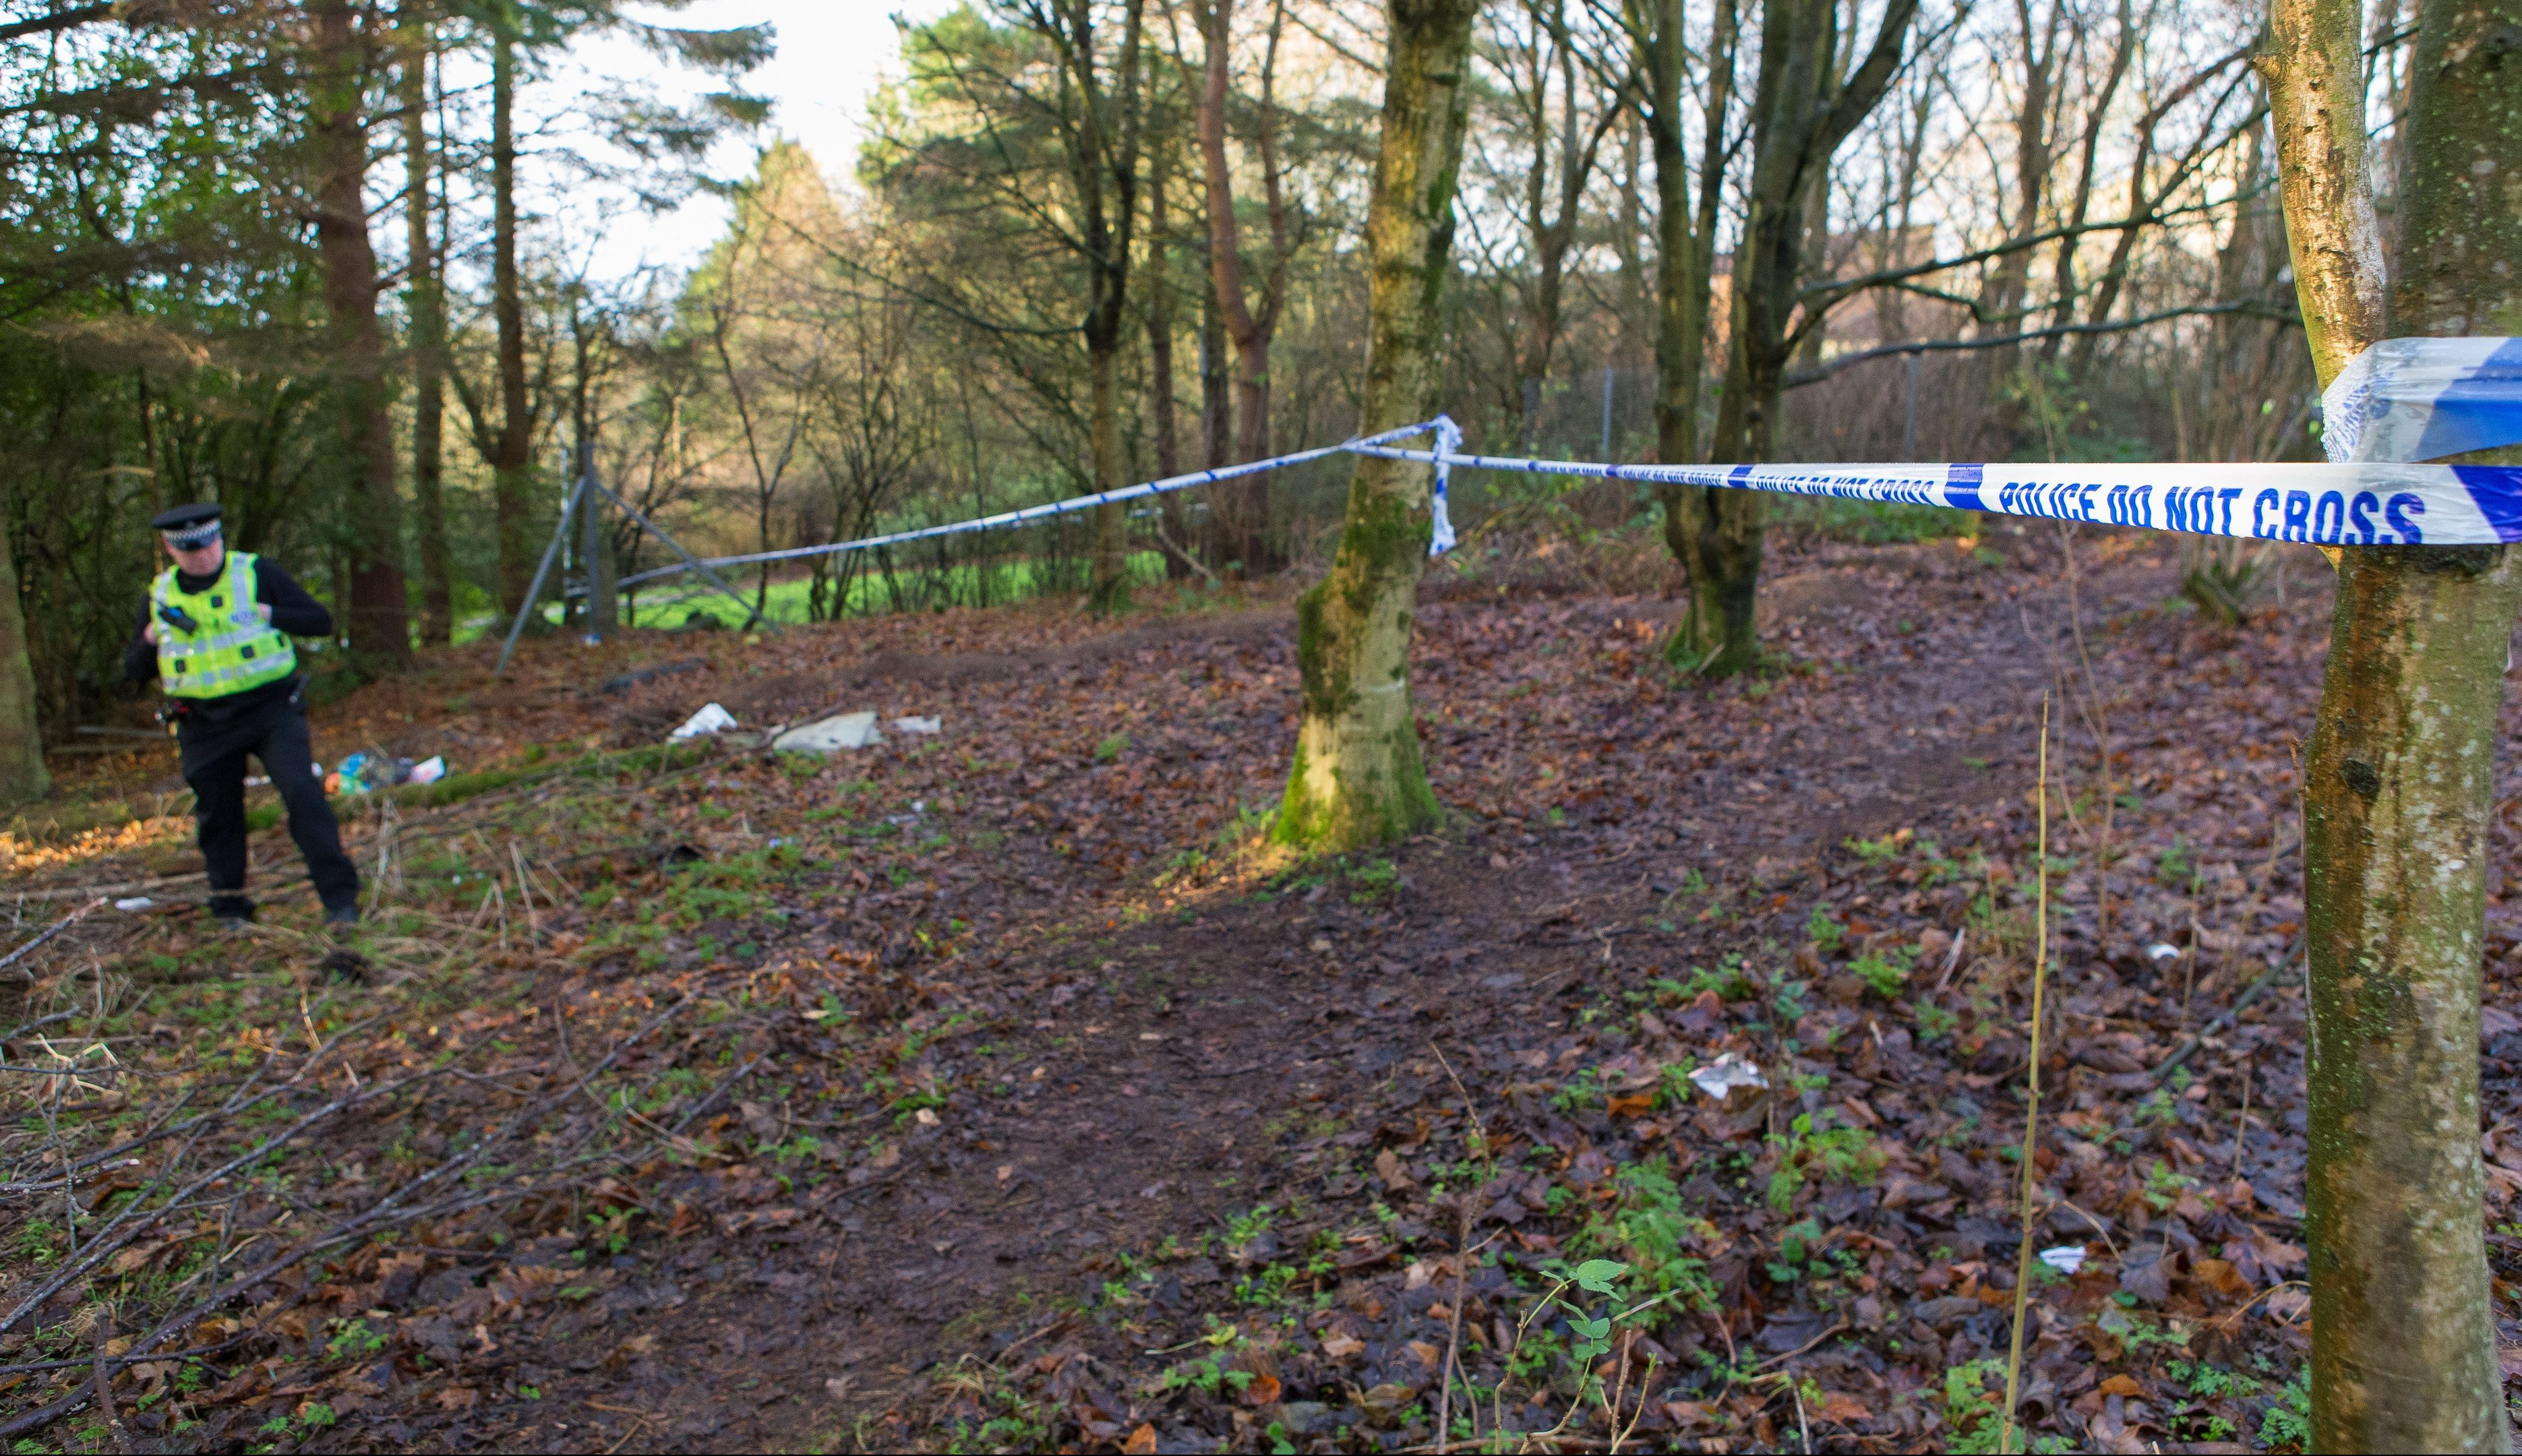 The scene on Monday after the body of a 52-year-old woman was found early on Sunday morning in Glenrothes.